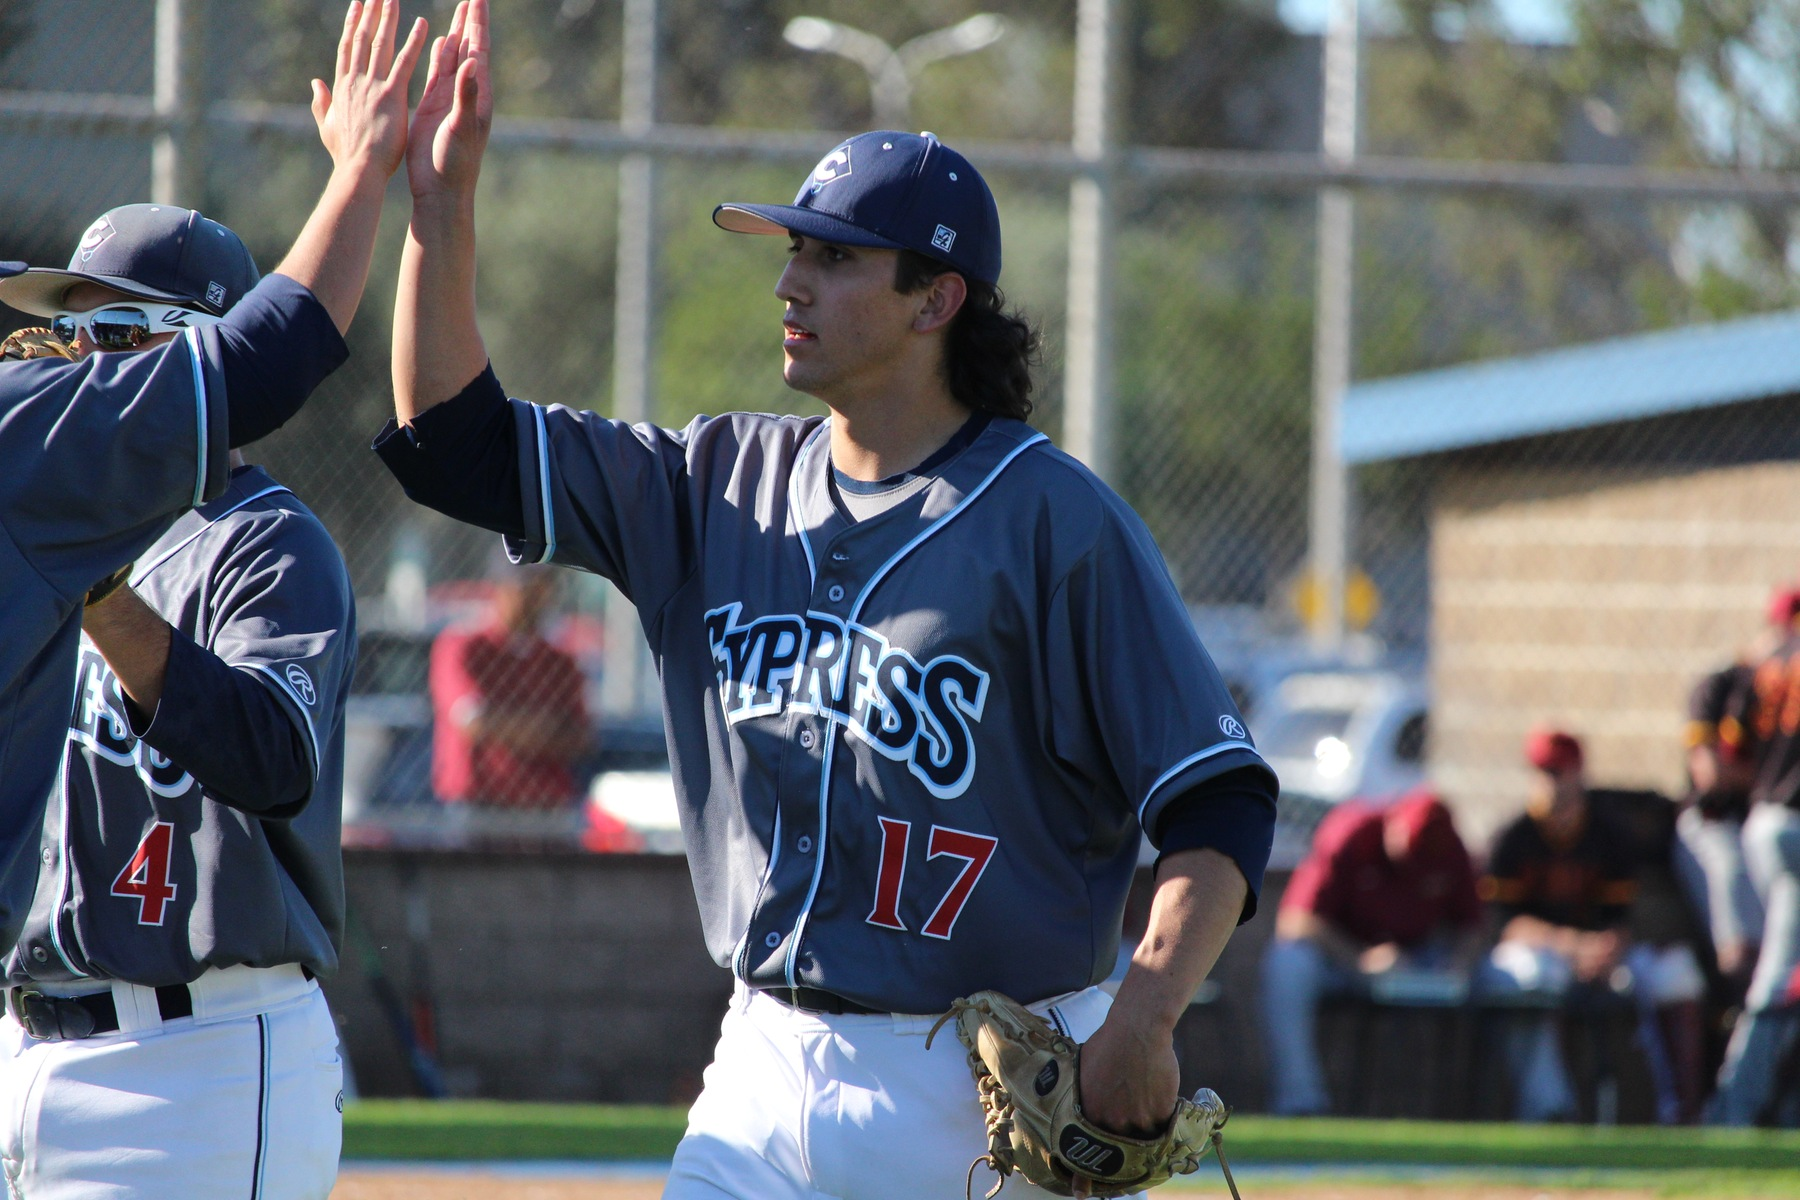 Quezada No-Hitter Leads Cypress Past Santa Ana, 11-0